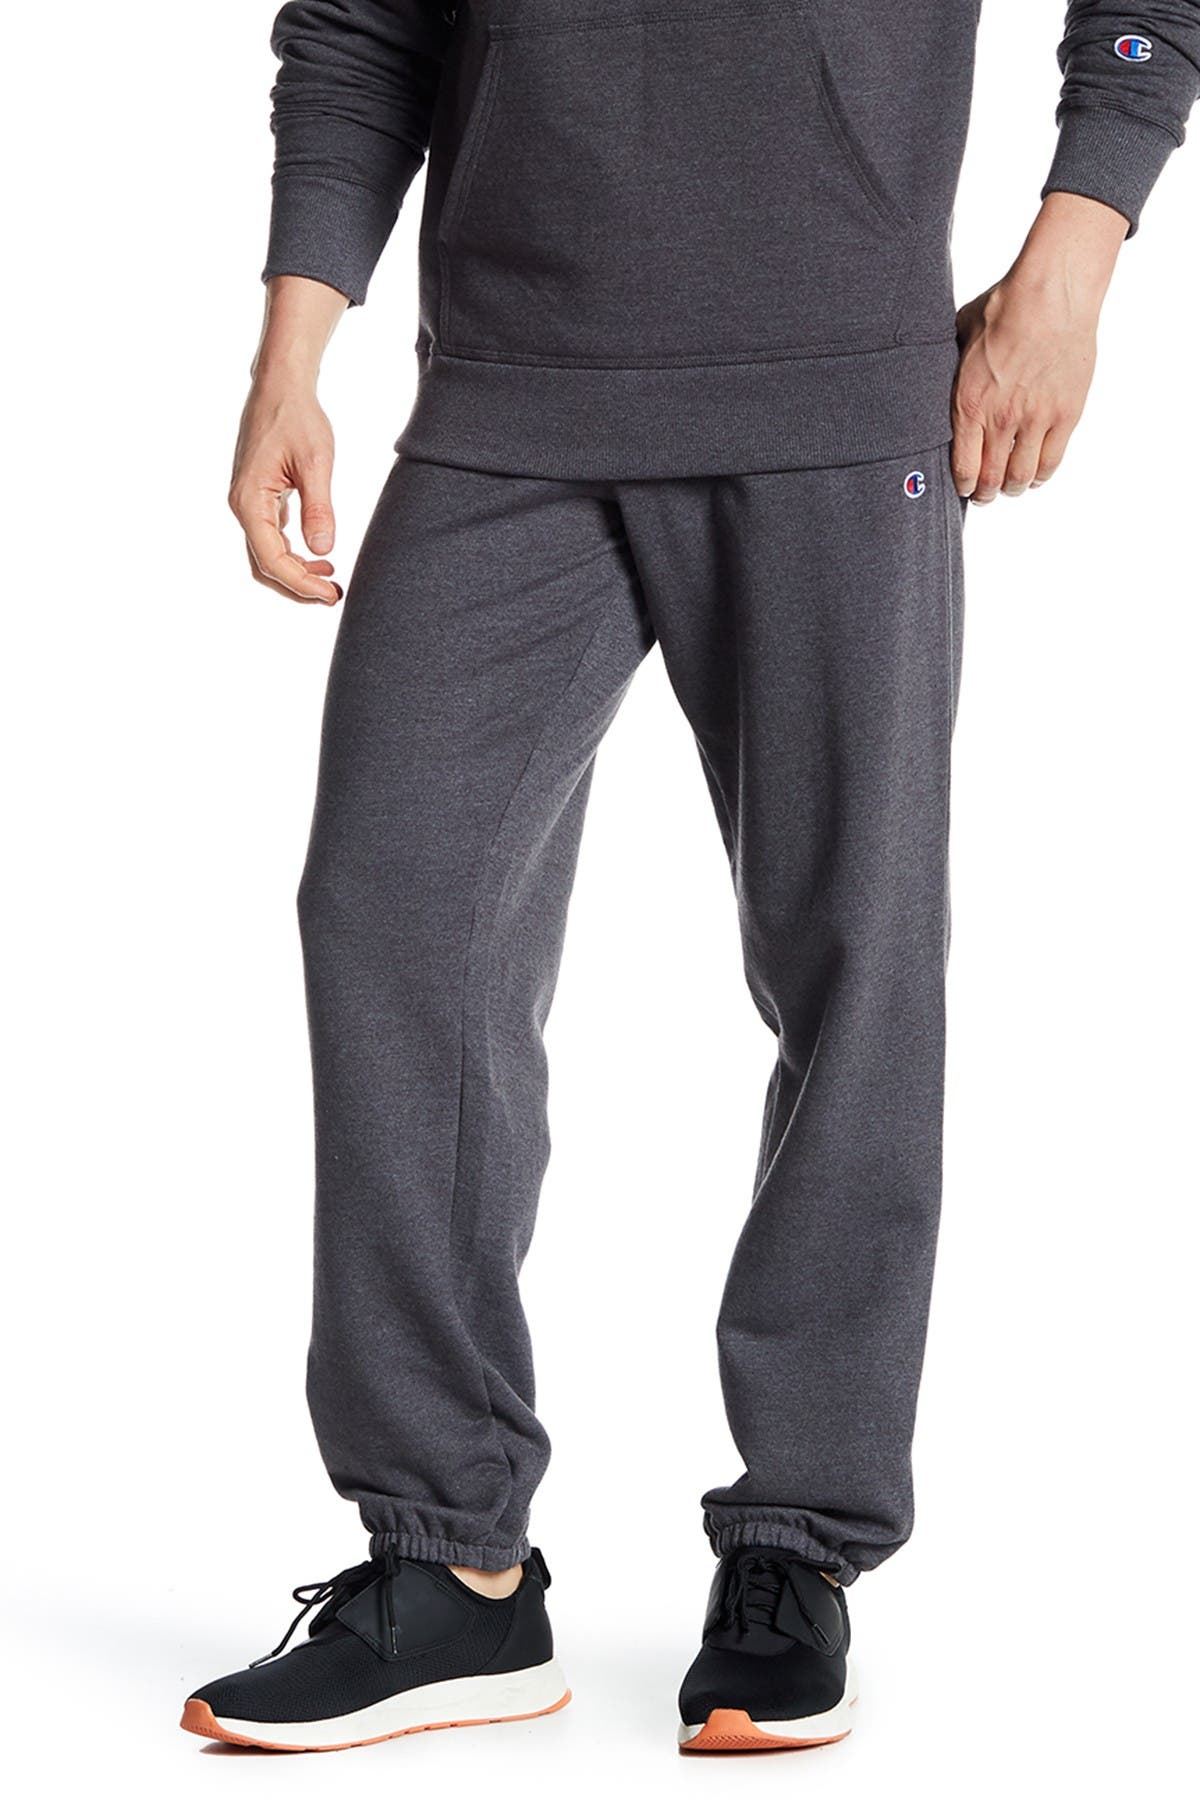 Image of Champion Powerblend Sweatpants